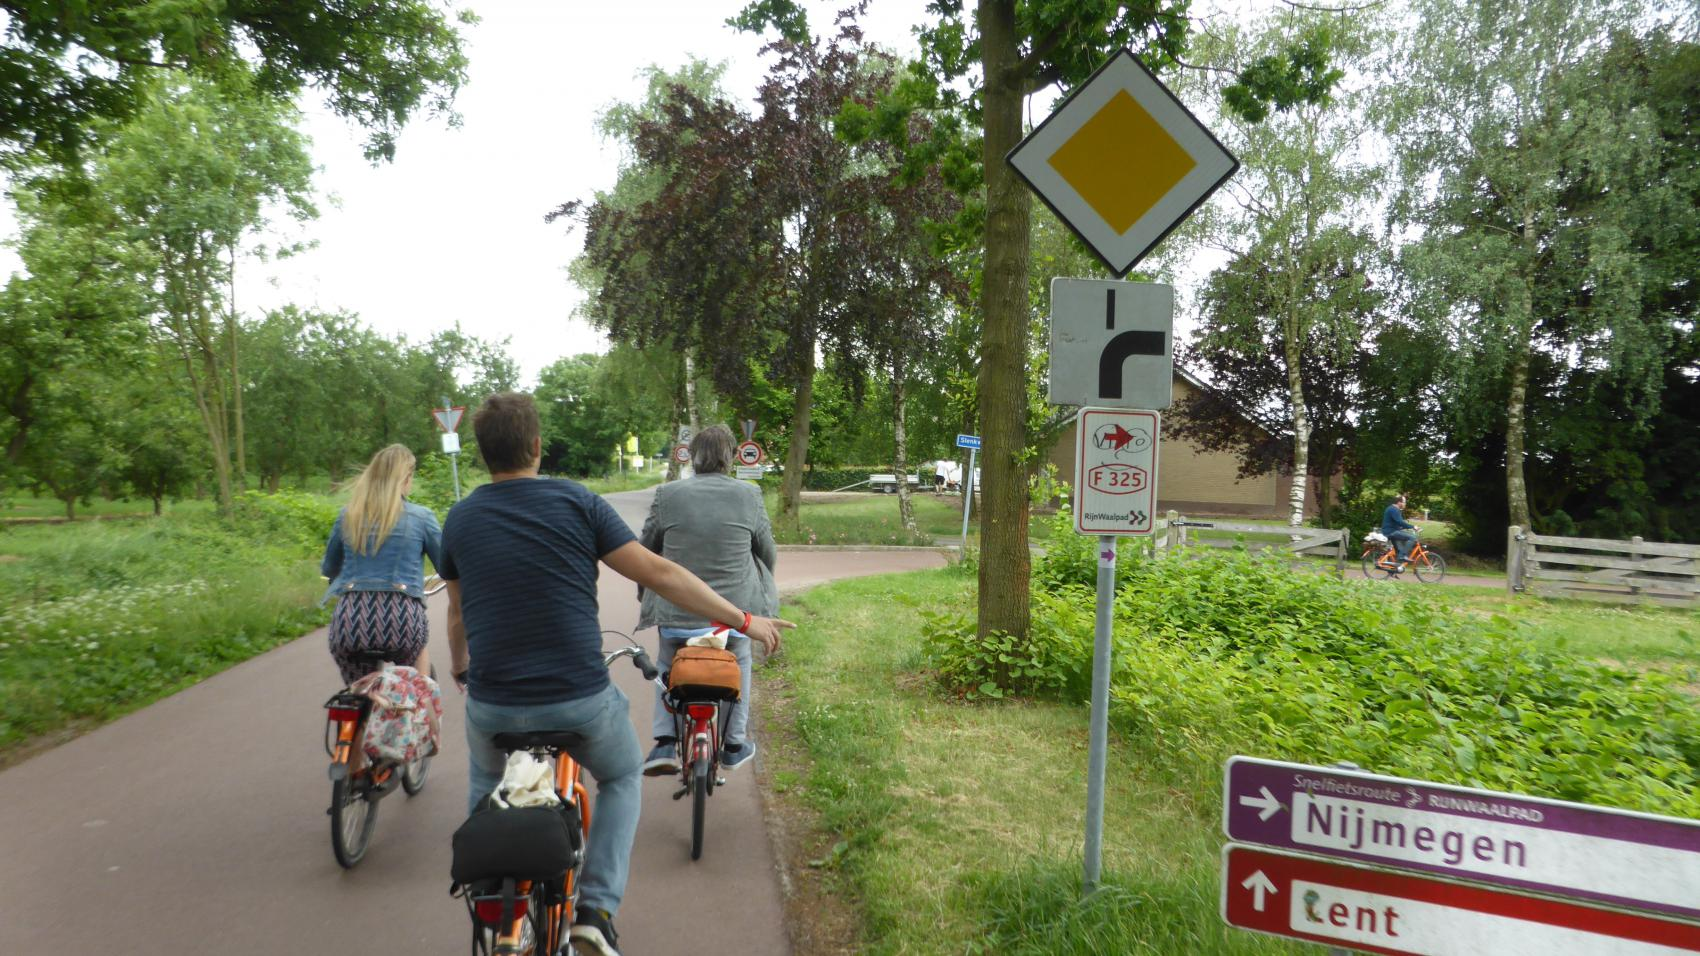 Crossing of Woerdsestraat and Slenkweg in Ressen - priority signage was introduced to match the cycle highway route